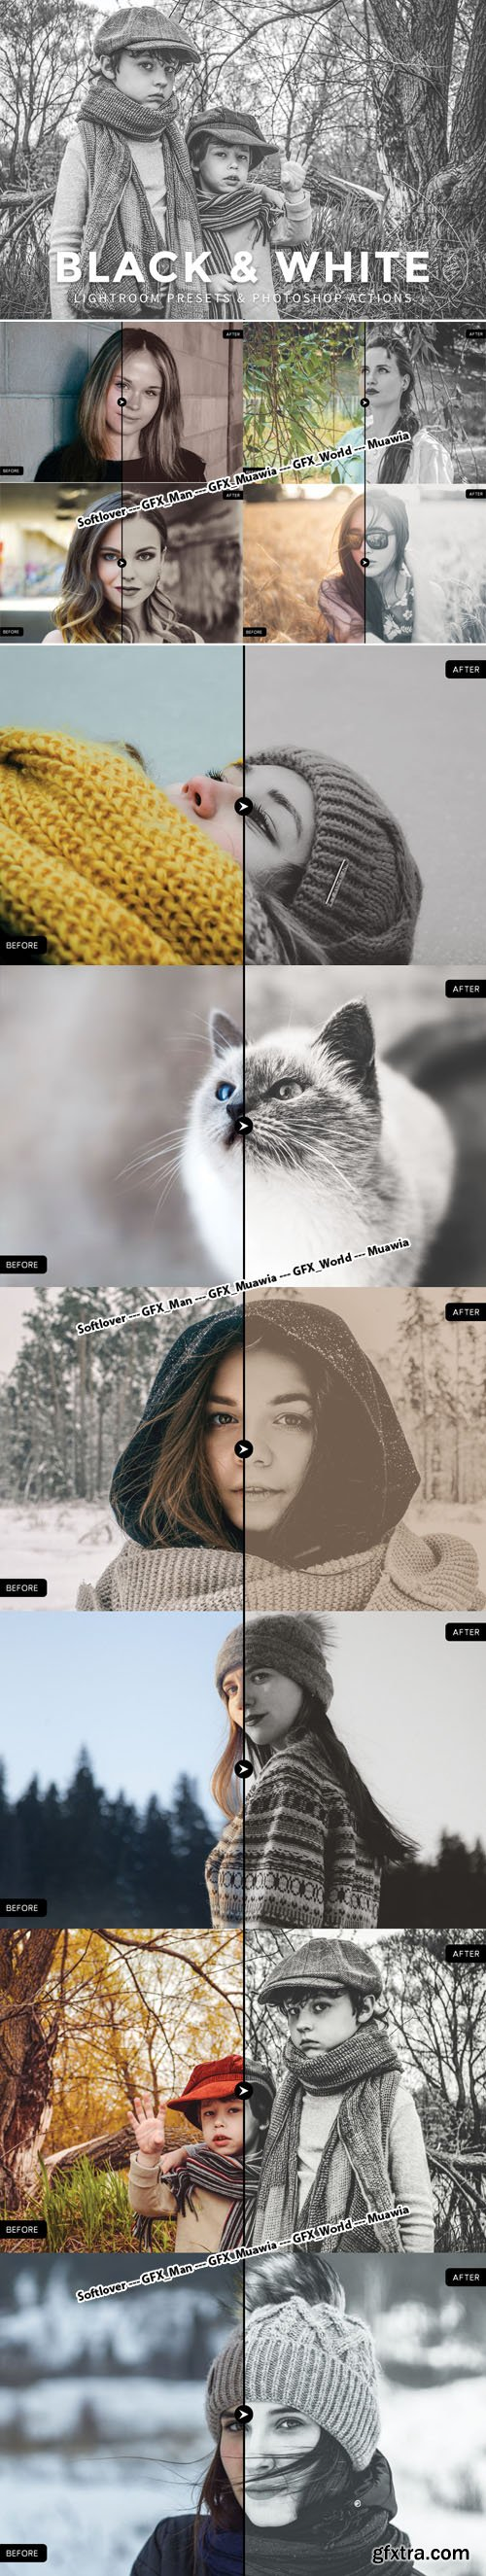 10 Black & White Presets for Lightroom, Photoshop and CameraRaw [lrtemplate/ATN/XMP]